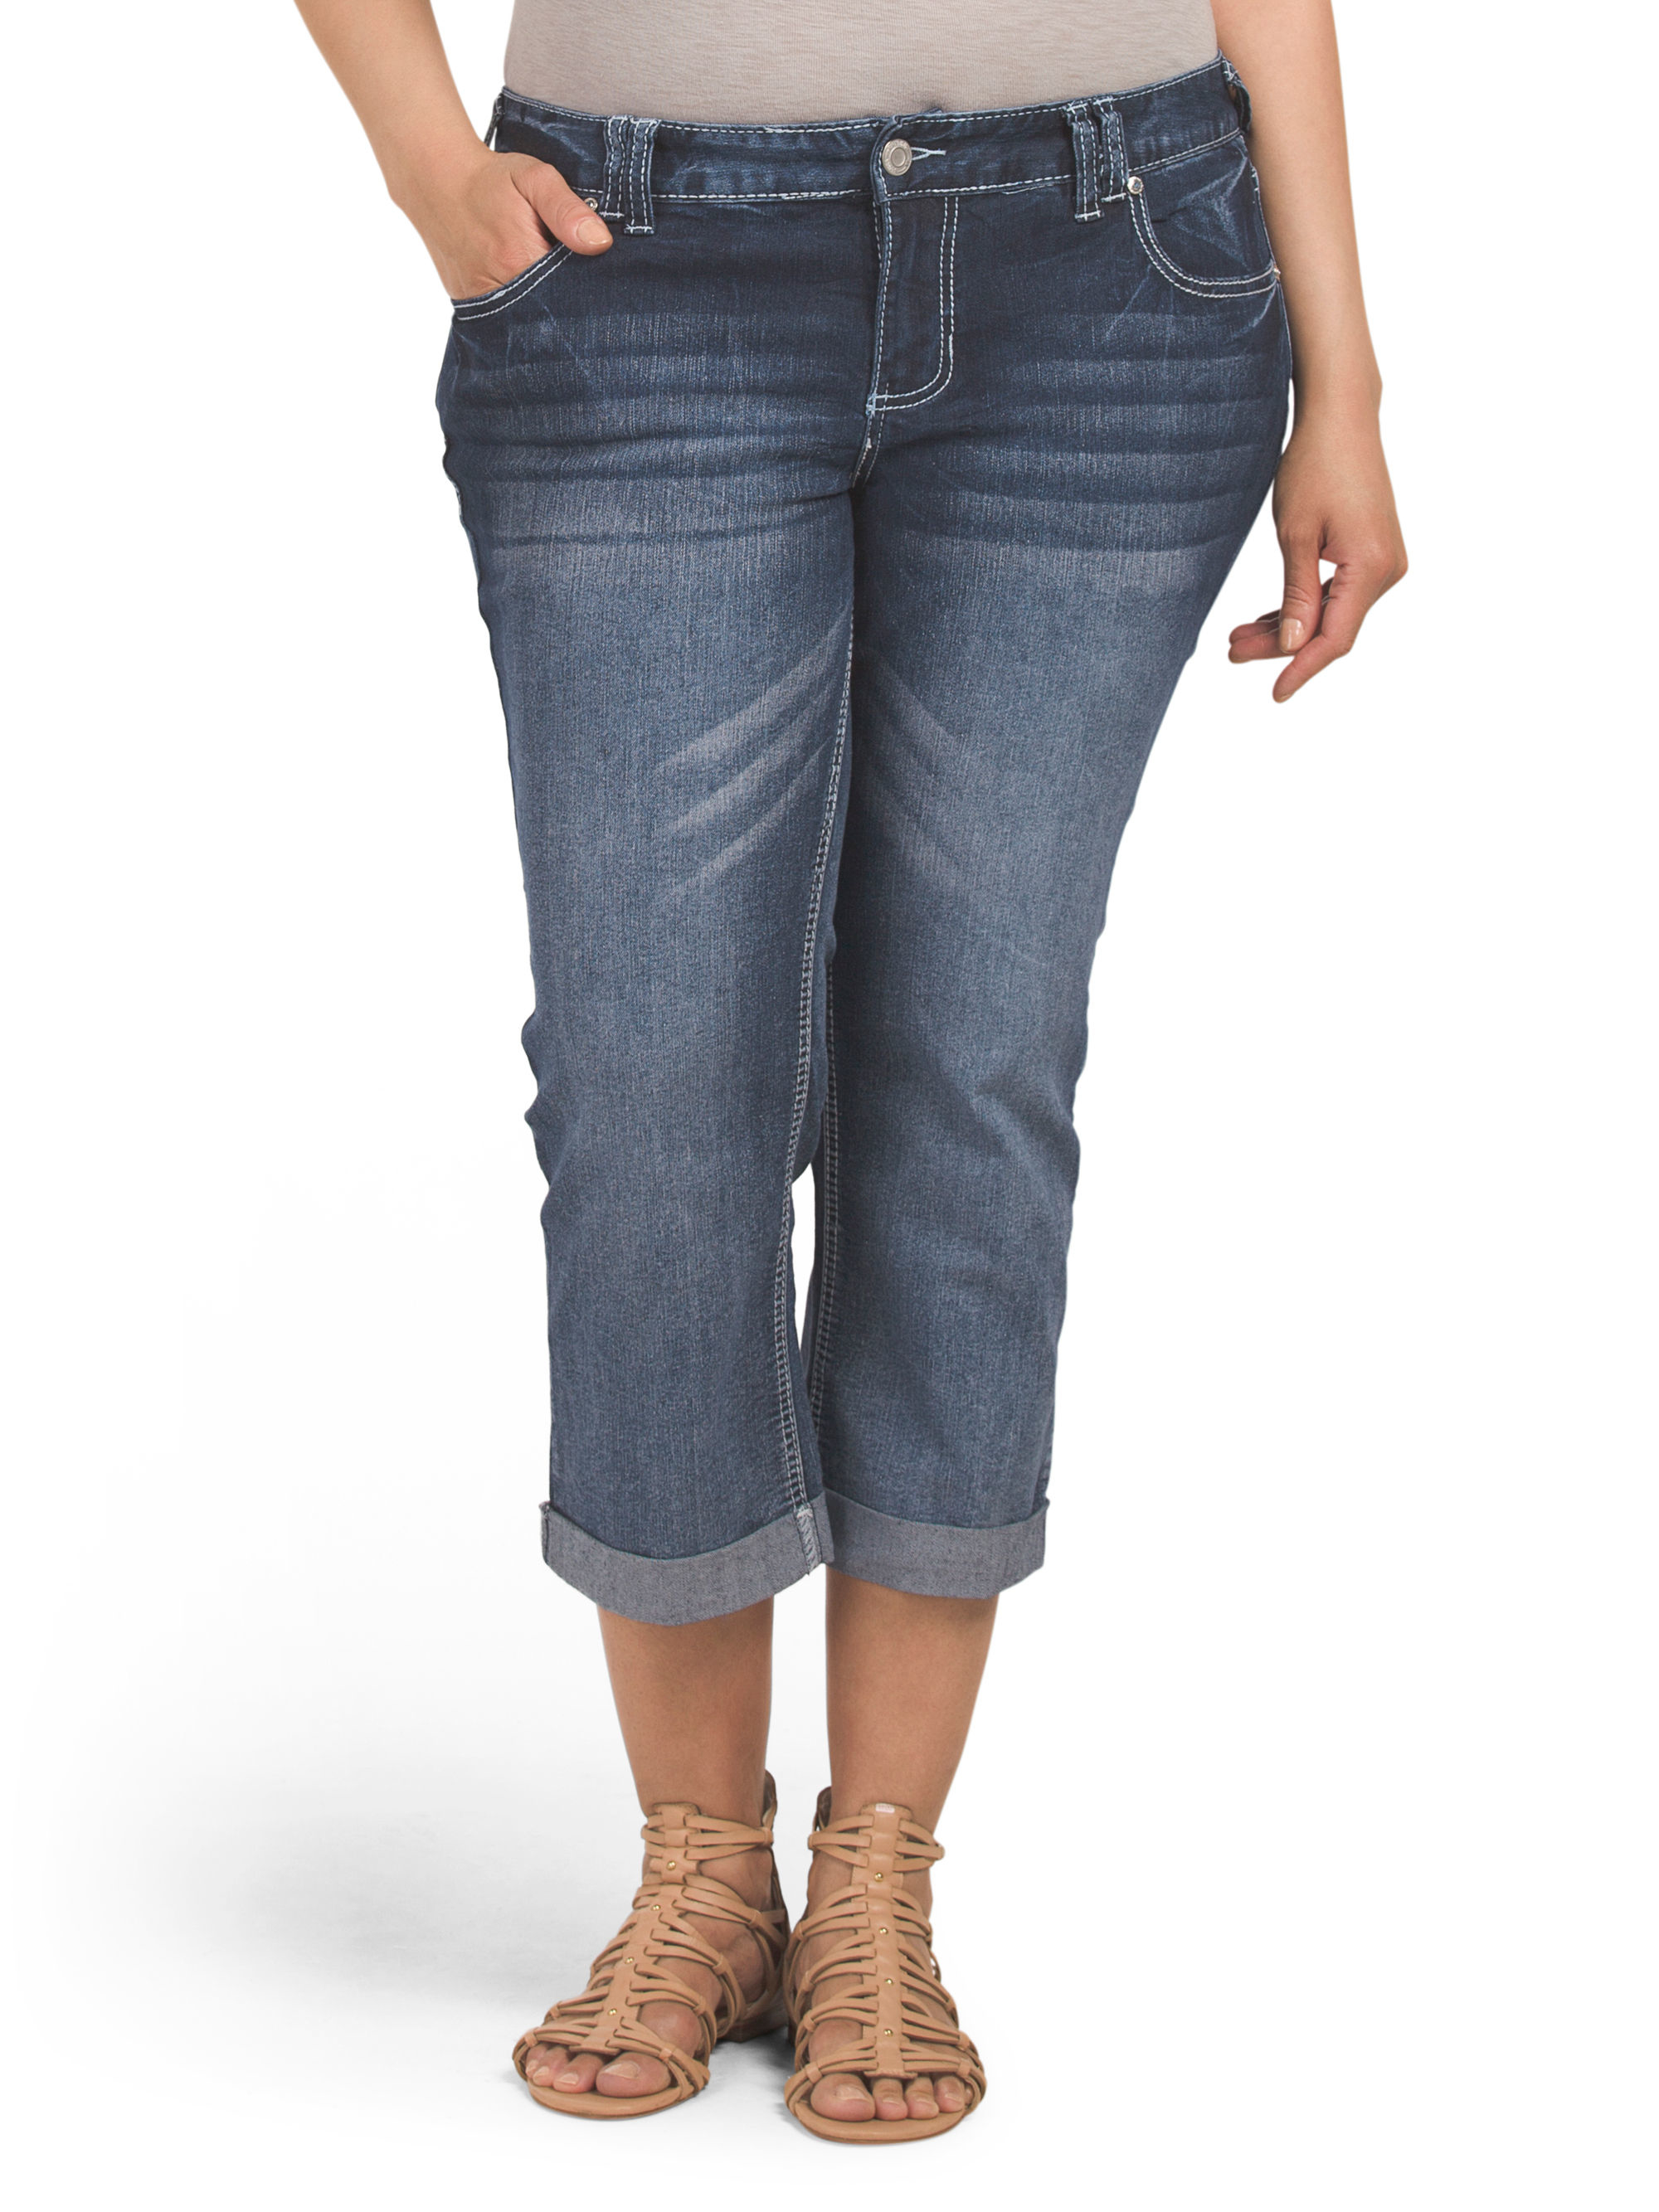 Women's Tj Maxx Clothing T. J. Maxx is one of the leading names in designer clothes and accessories. It pulls together the very best names in fashion, from DVF to Marc Jacobs to Ralph Lauren, and puts them in one place for price-savvy shoppers.